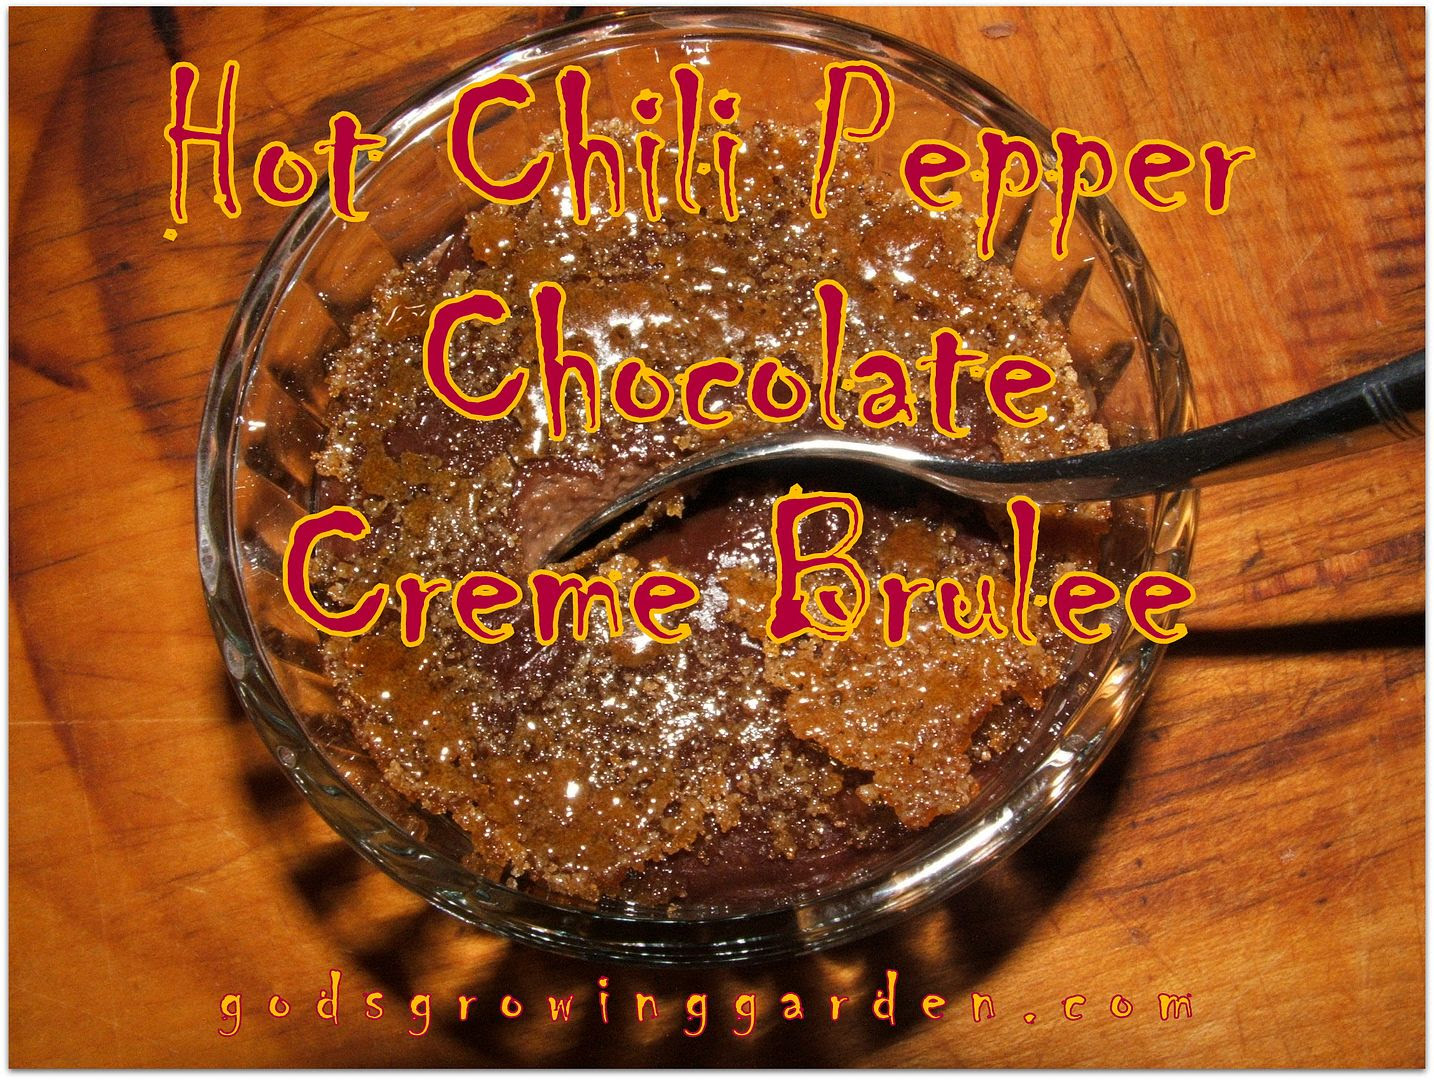 Chili Pepper Chocolate Creme Brulee by Angie Ouellette-Tower photo 007_zpsbece2a2b.jpg